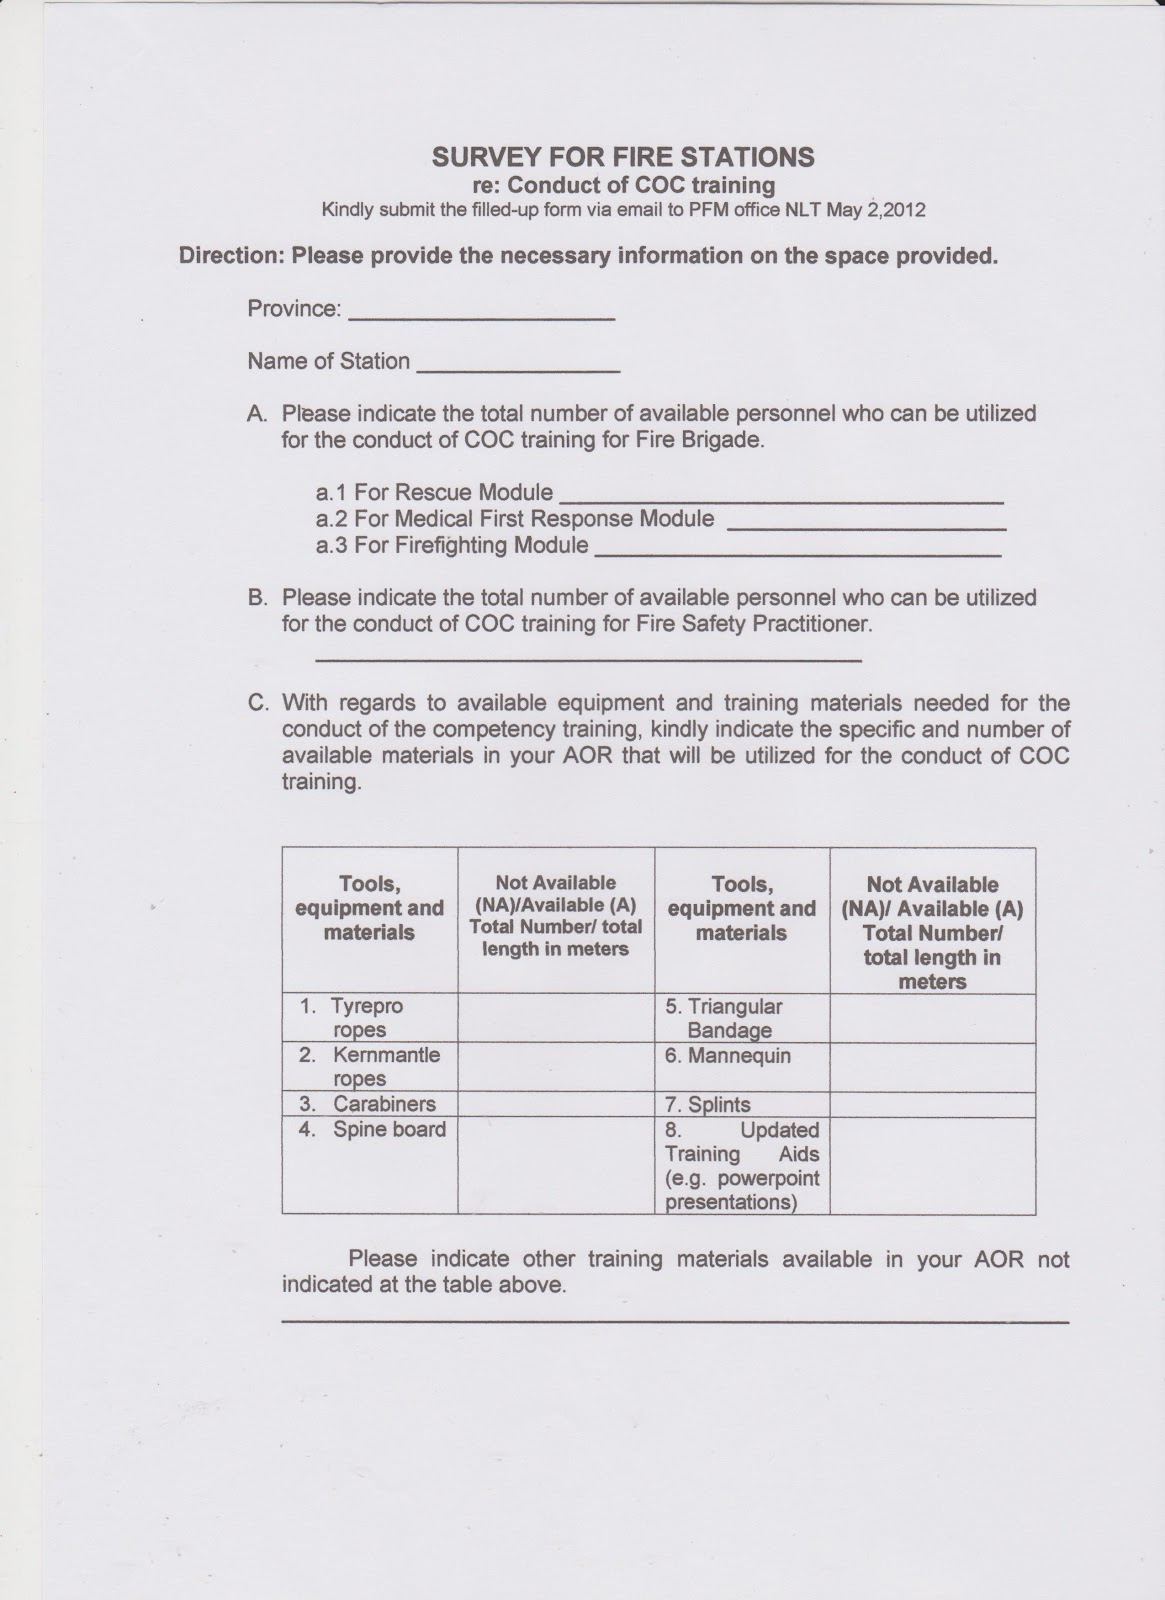 OPD-BATANGAS ARCHIVES: Memo: Guidelines in Facilitating Letter